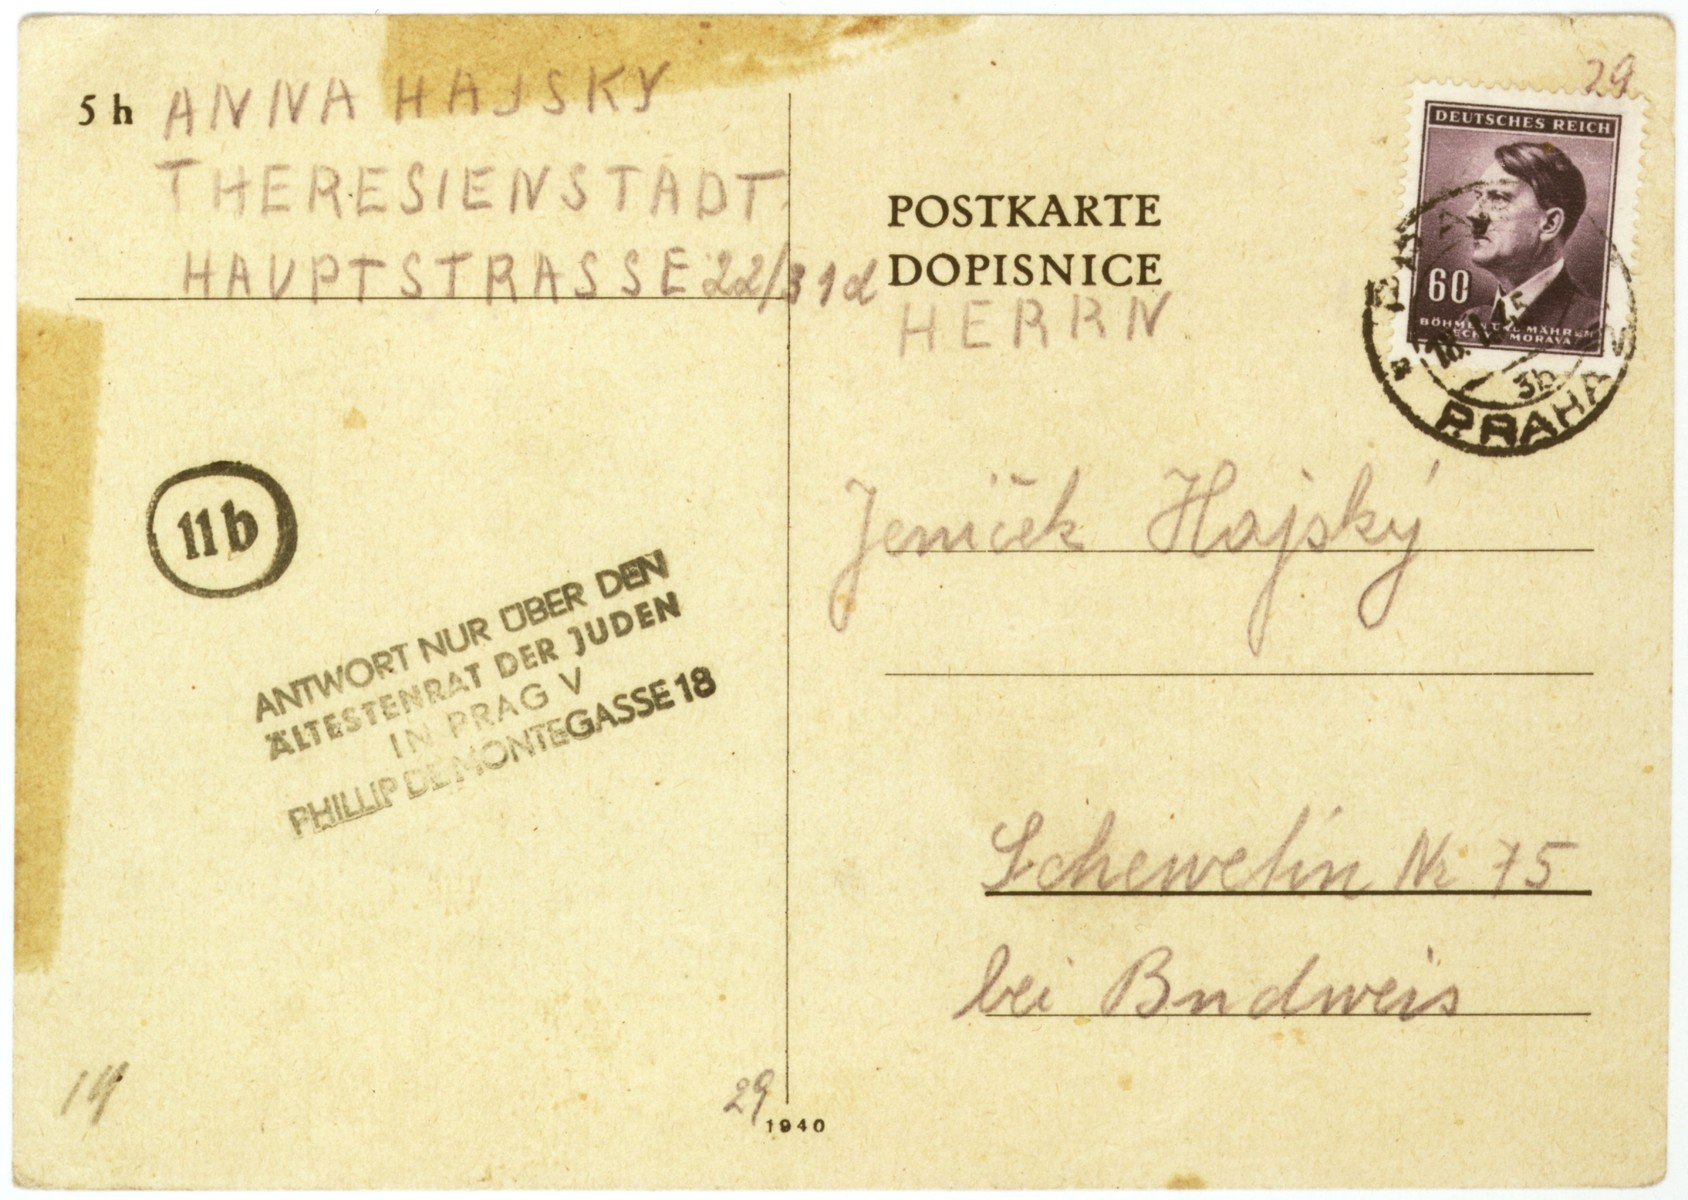 A postcard sent to Marcel and Jan Hajsky by their mother, Anna (Goldstein) Hajsky, from the Theresienstadt concentration camp.    Anna writes that she and her mother, Fanny Goldstein, received the boys' postcard dated November 25, 1944, and that they are healthy.  The two await news from Marcel and Jan, as well as a care package.  Anna asks if her sons had a Christmas tree for the holidays.  Marcel and Jan were able to escape deportation because their father, Cenek Hajsky, was not Jewish.